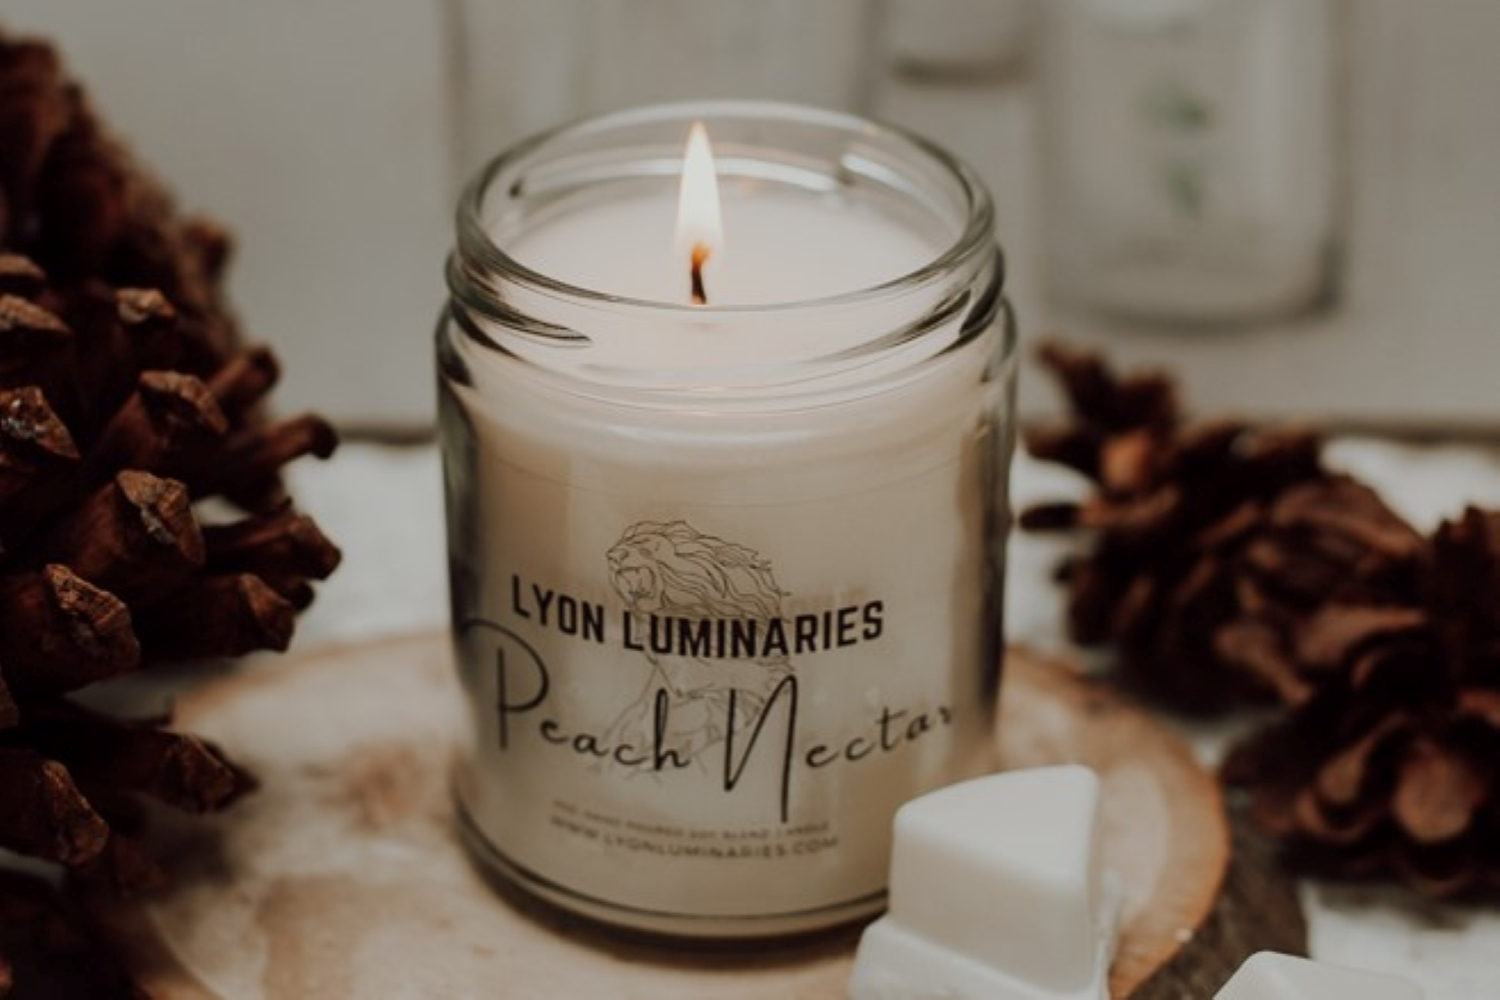 Peach Nectar Soy Blend Candle